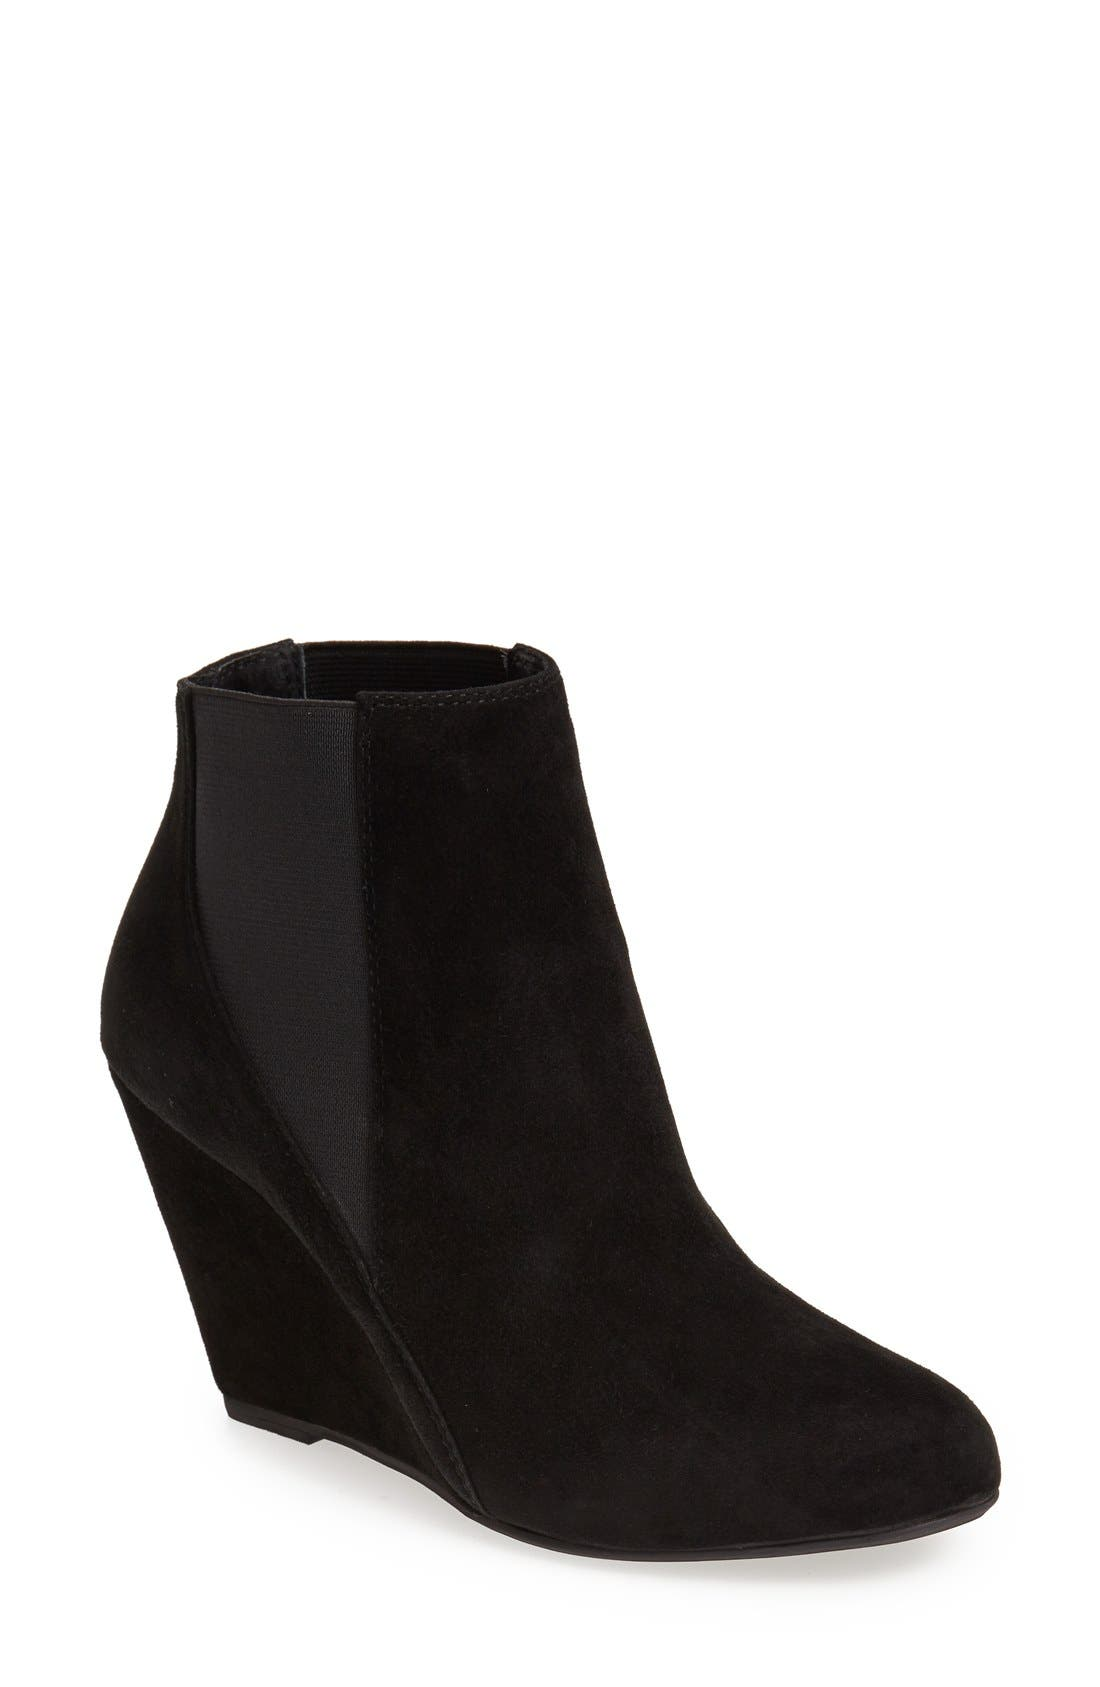 Alternate Image 1 Selected - Jeffrey Campbell 'Wagner' Suede Chelsea Boot (Women)